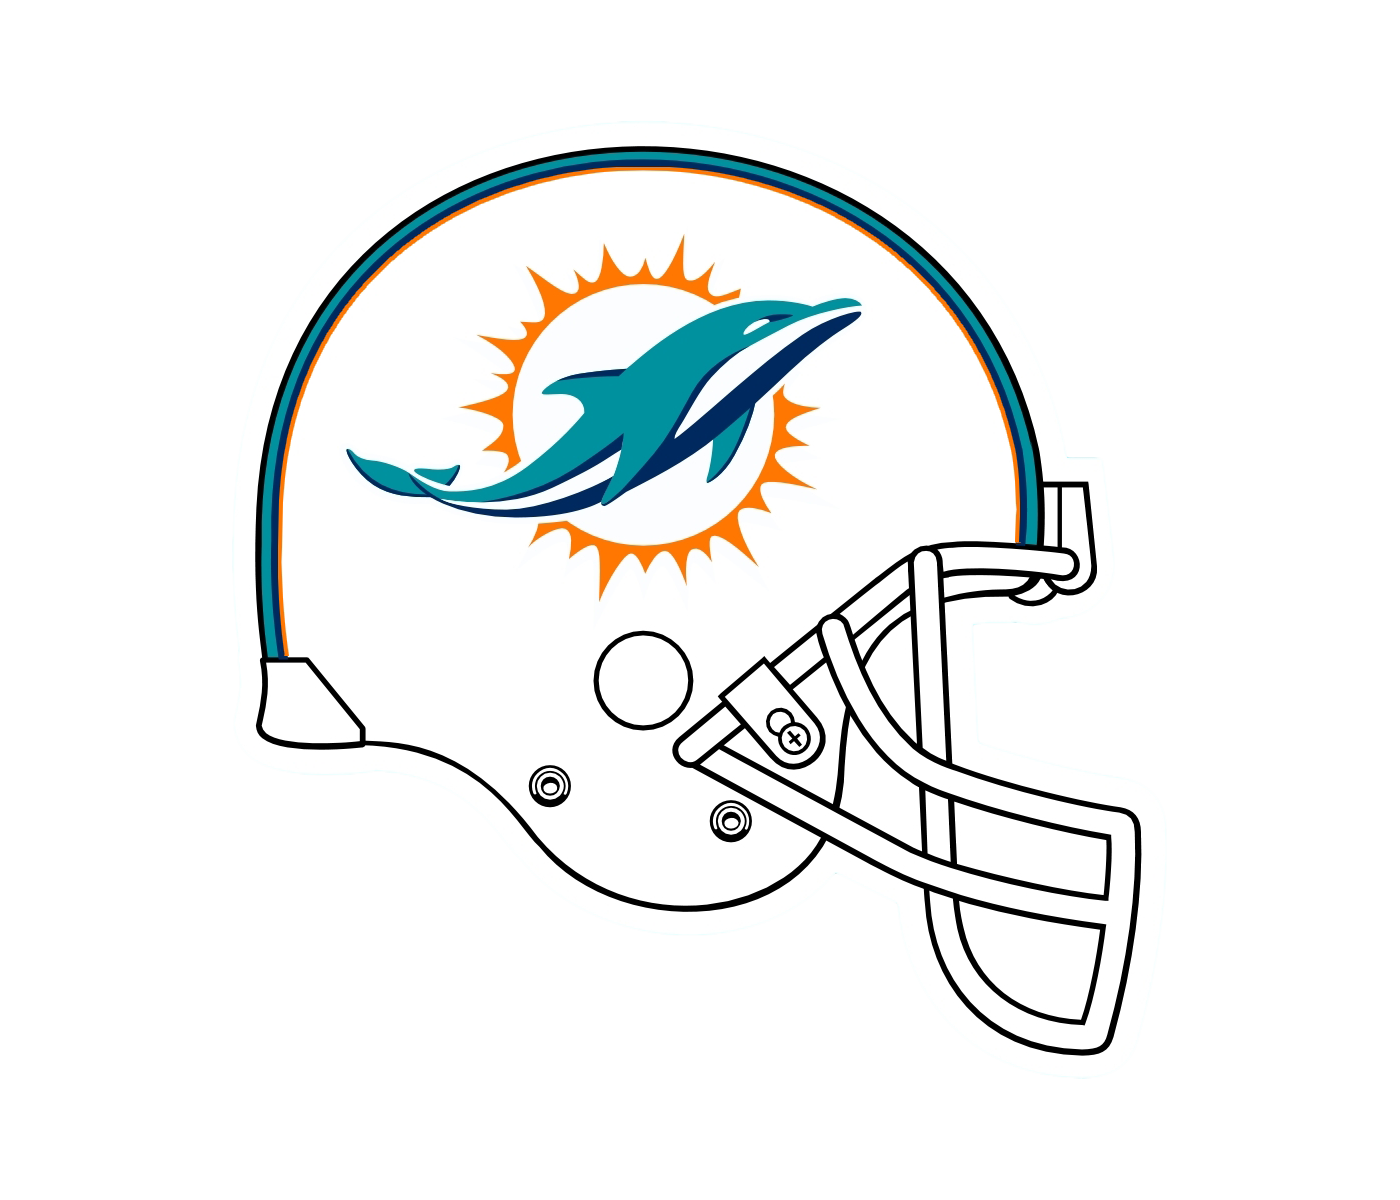 Dolphins logo png - photo#38